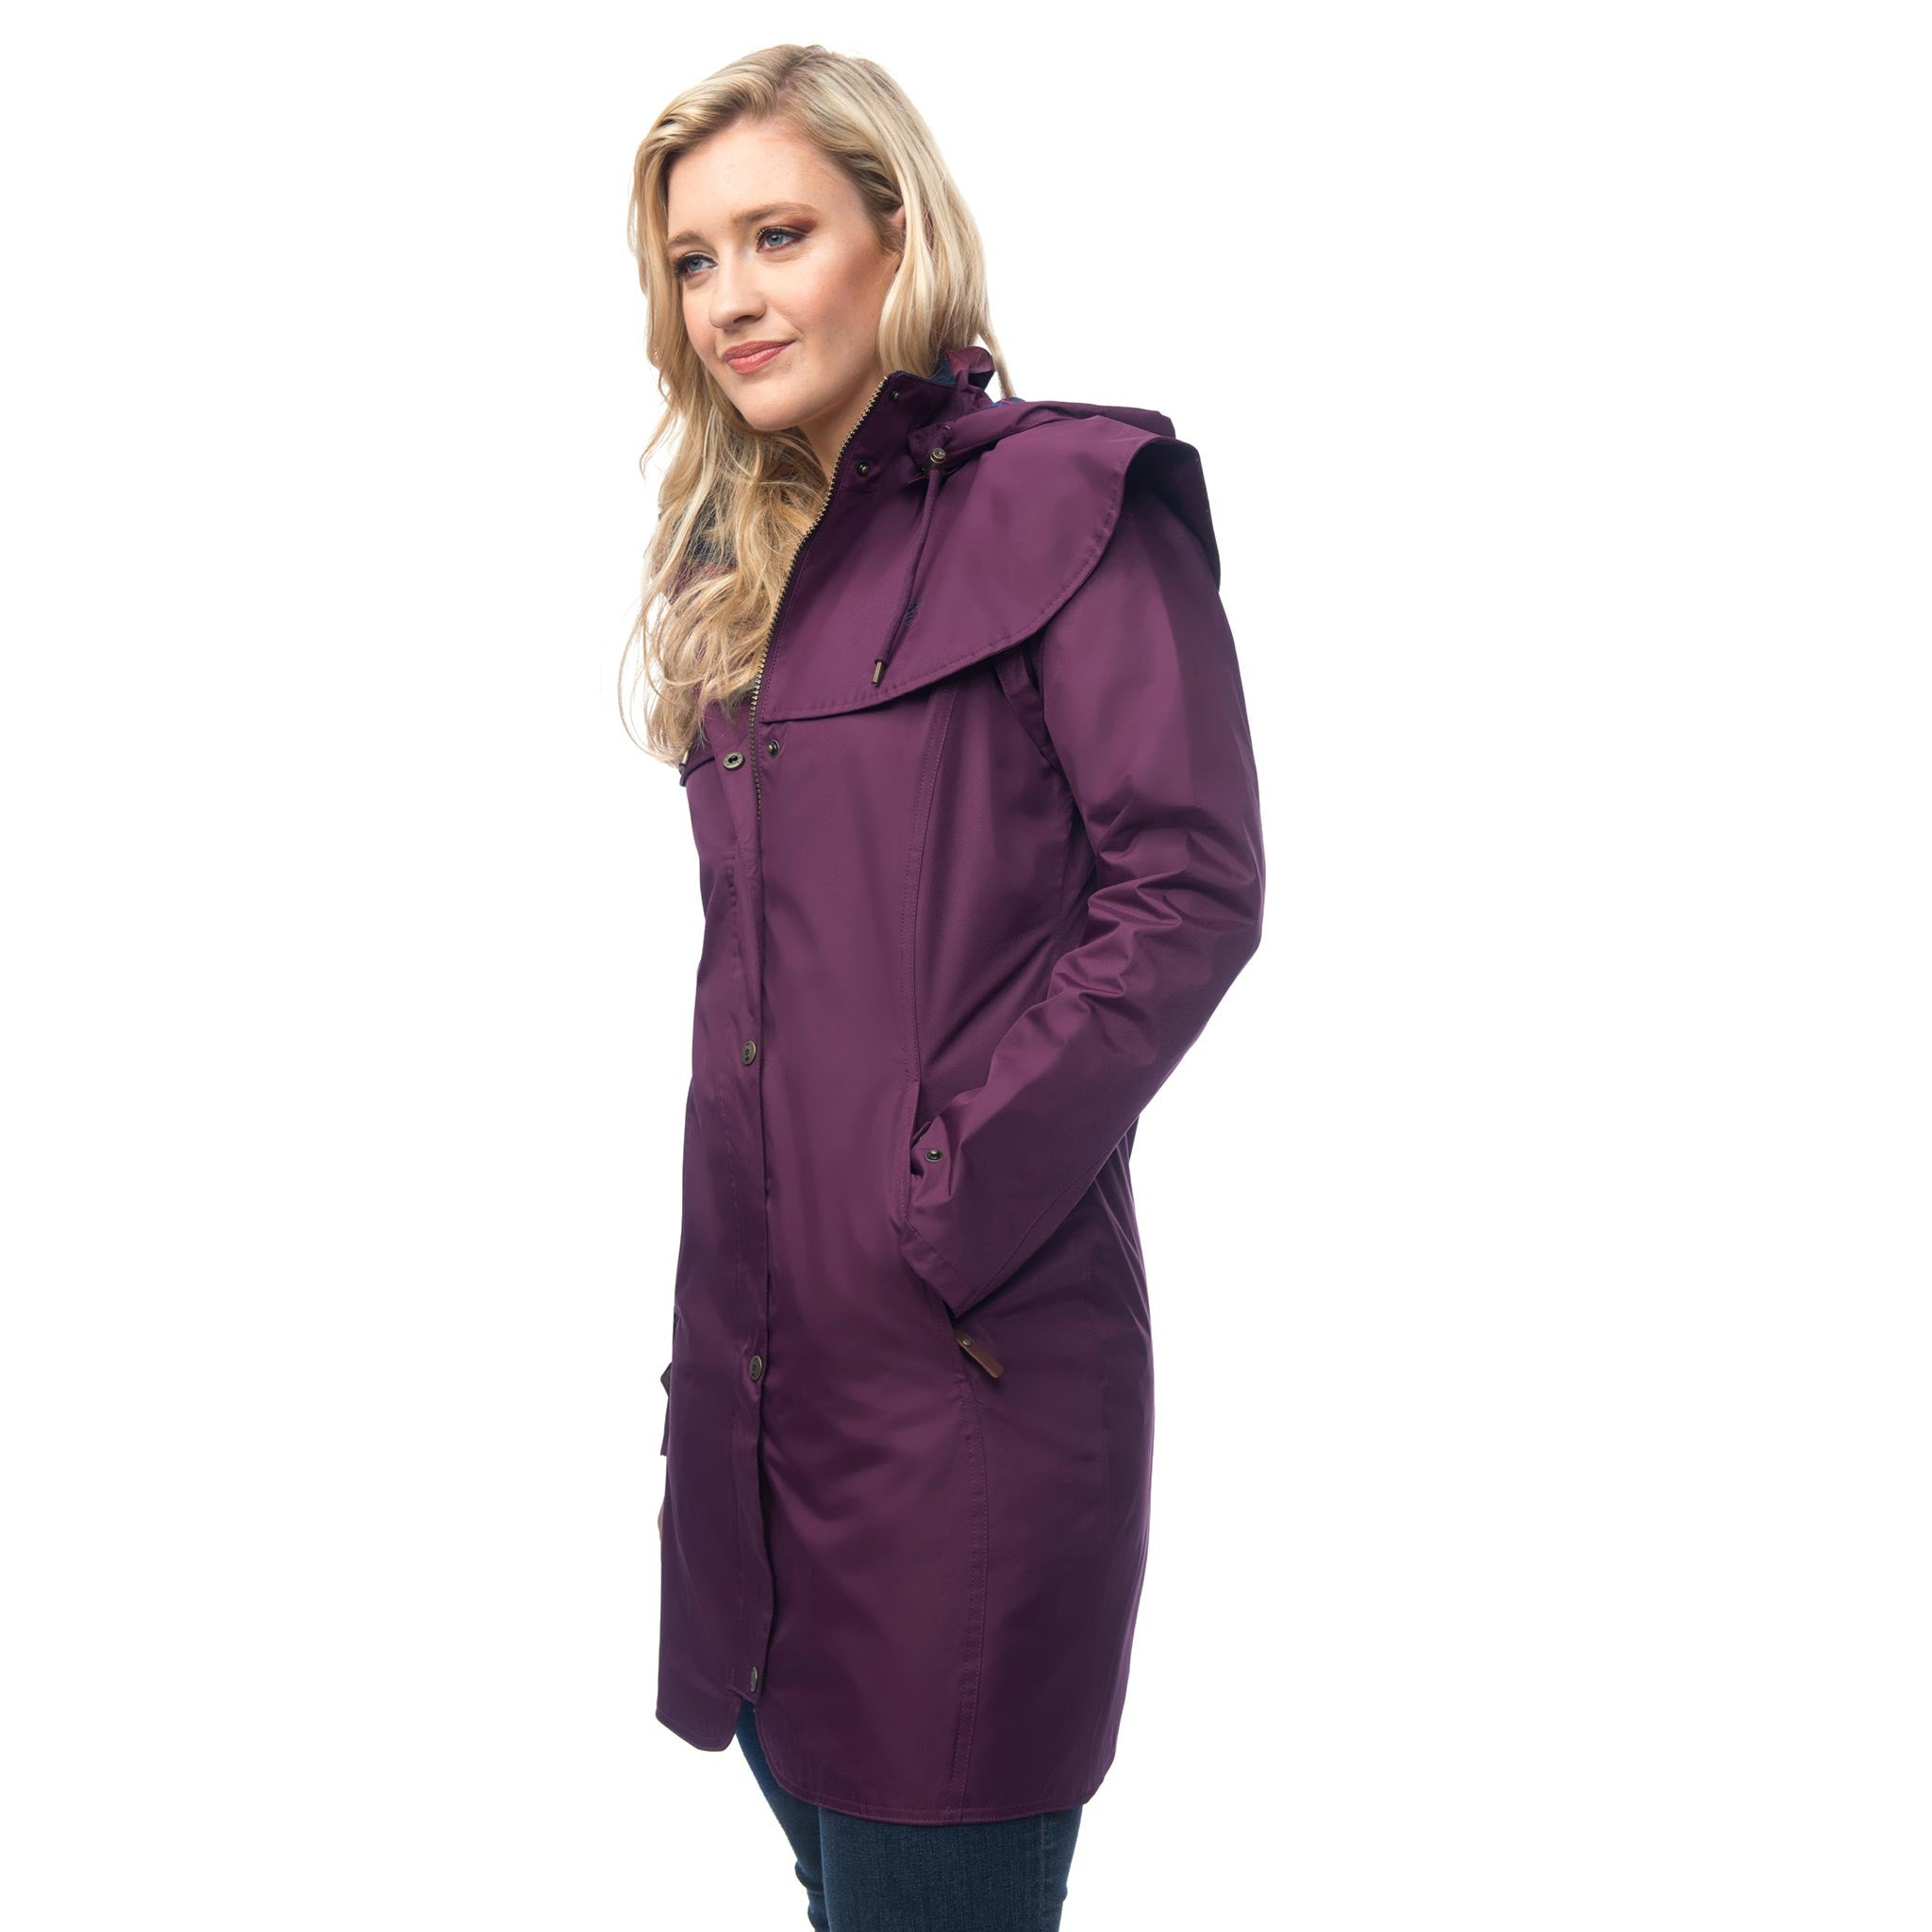 Lighthouse Womens Outrider 3/4 Length Waterproof Raincoat in Purple. Zipped & Buttoned.